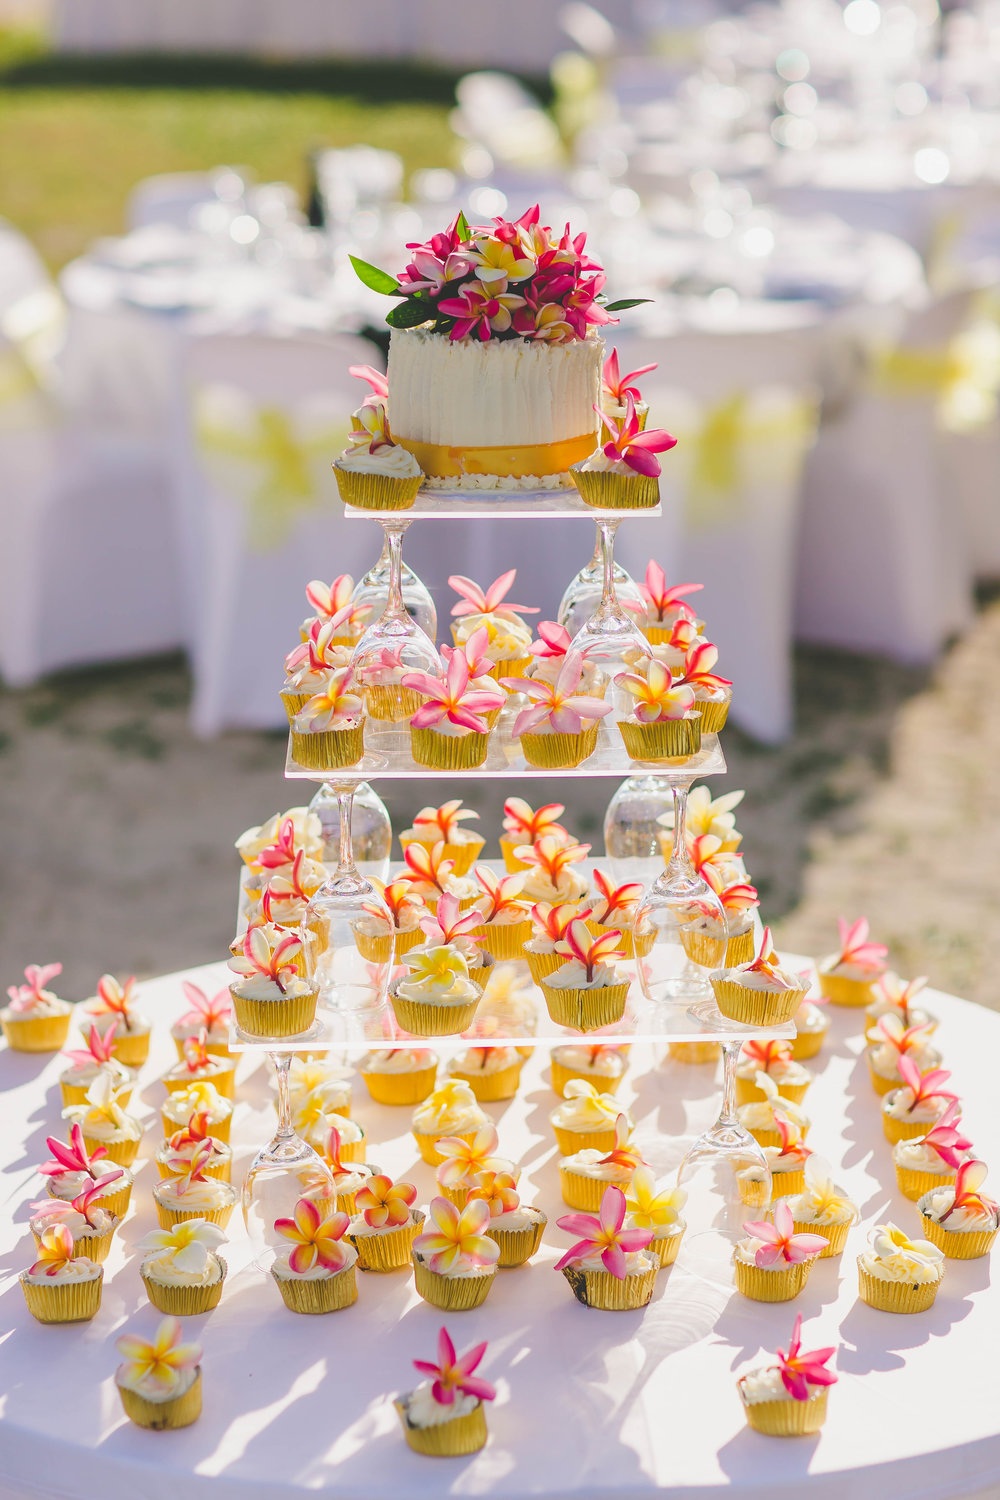 rarotonga tropical wedding cupcakes